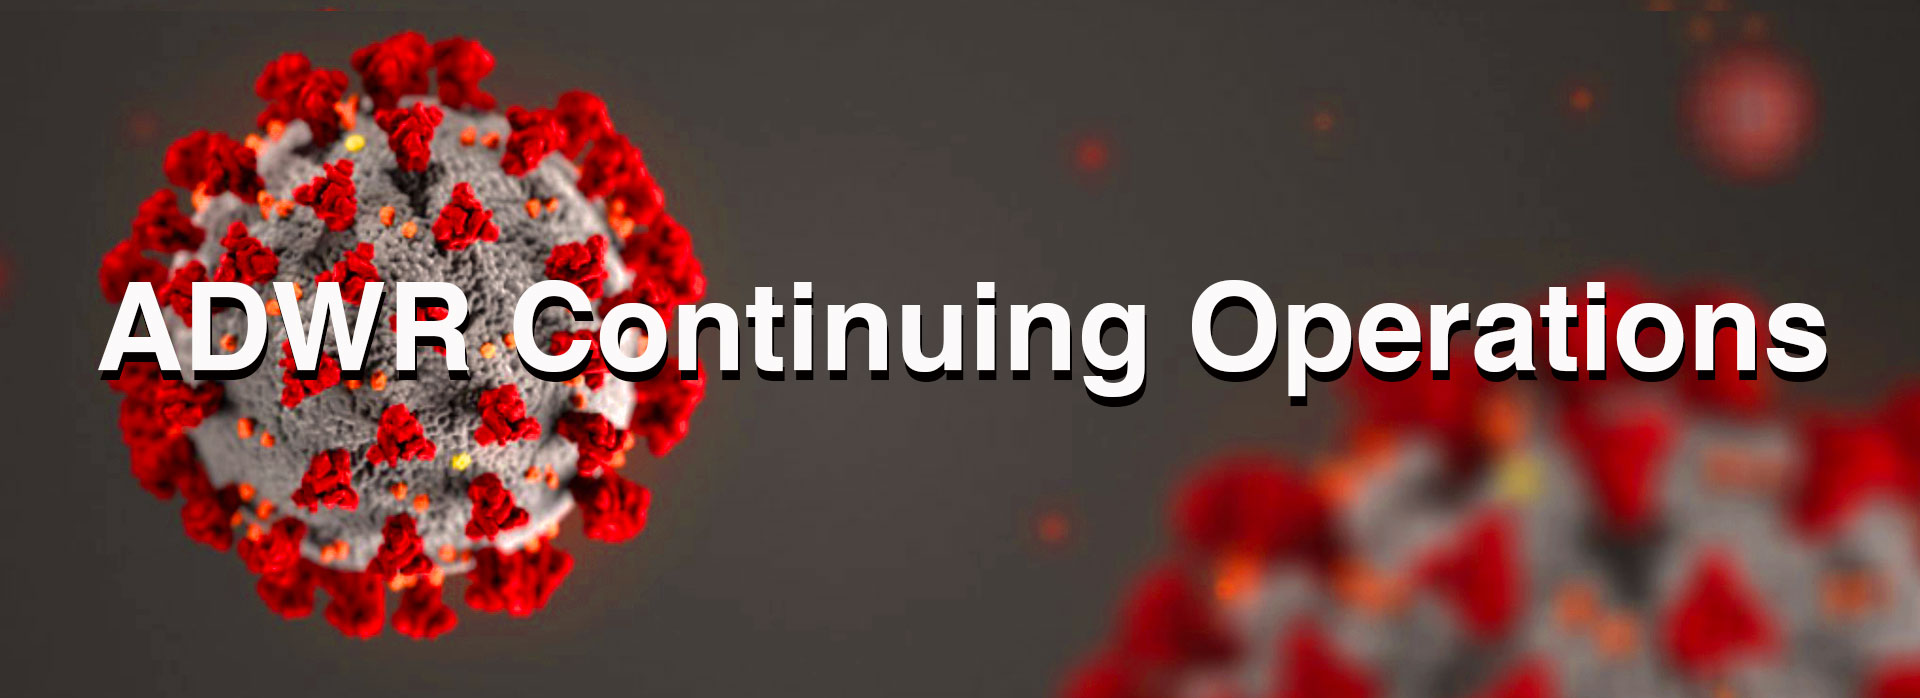 COVID-19: ADWR Continuing Operations banner image